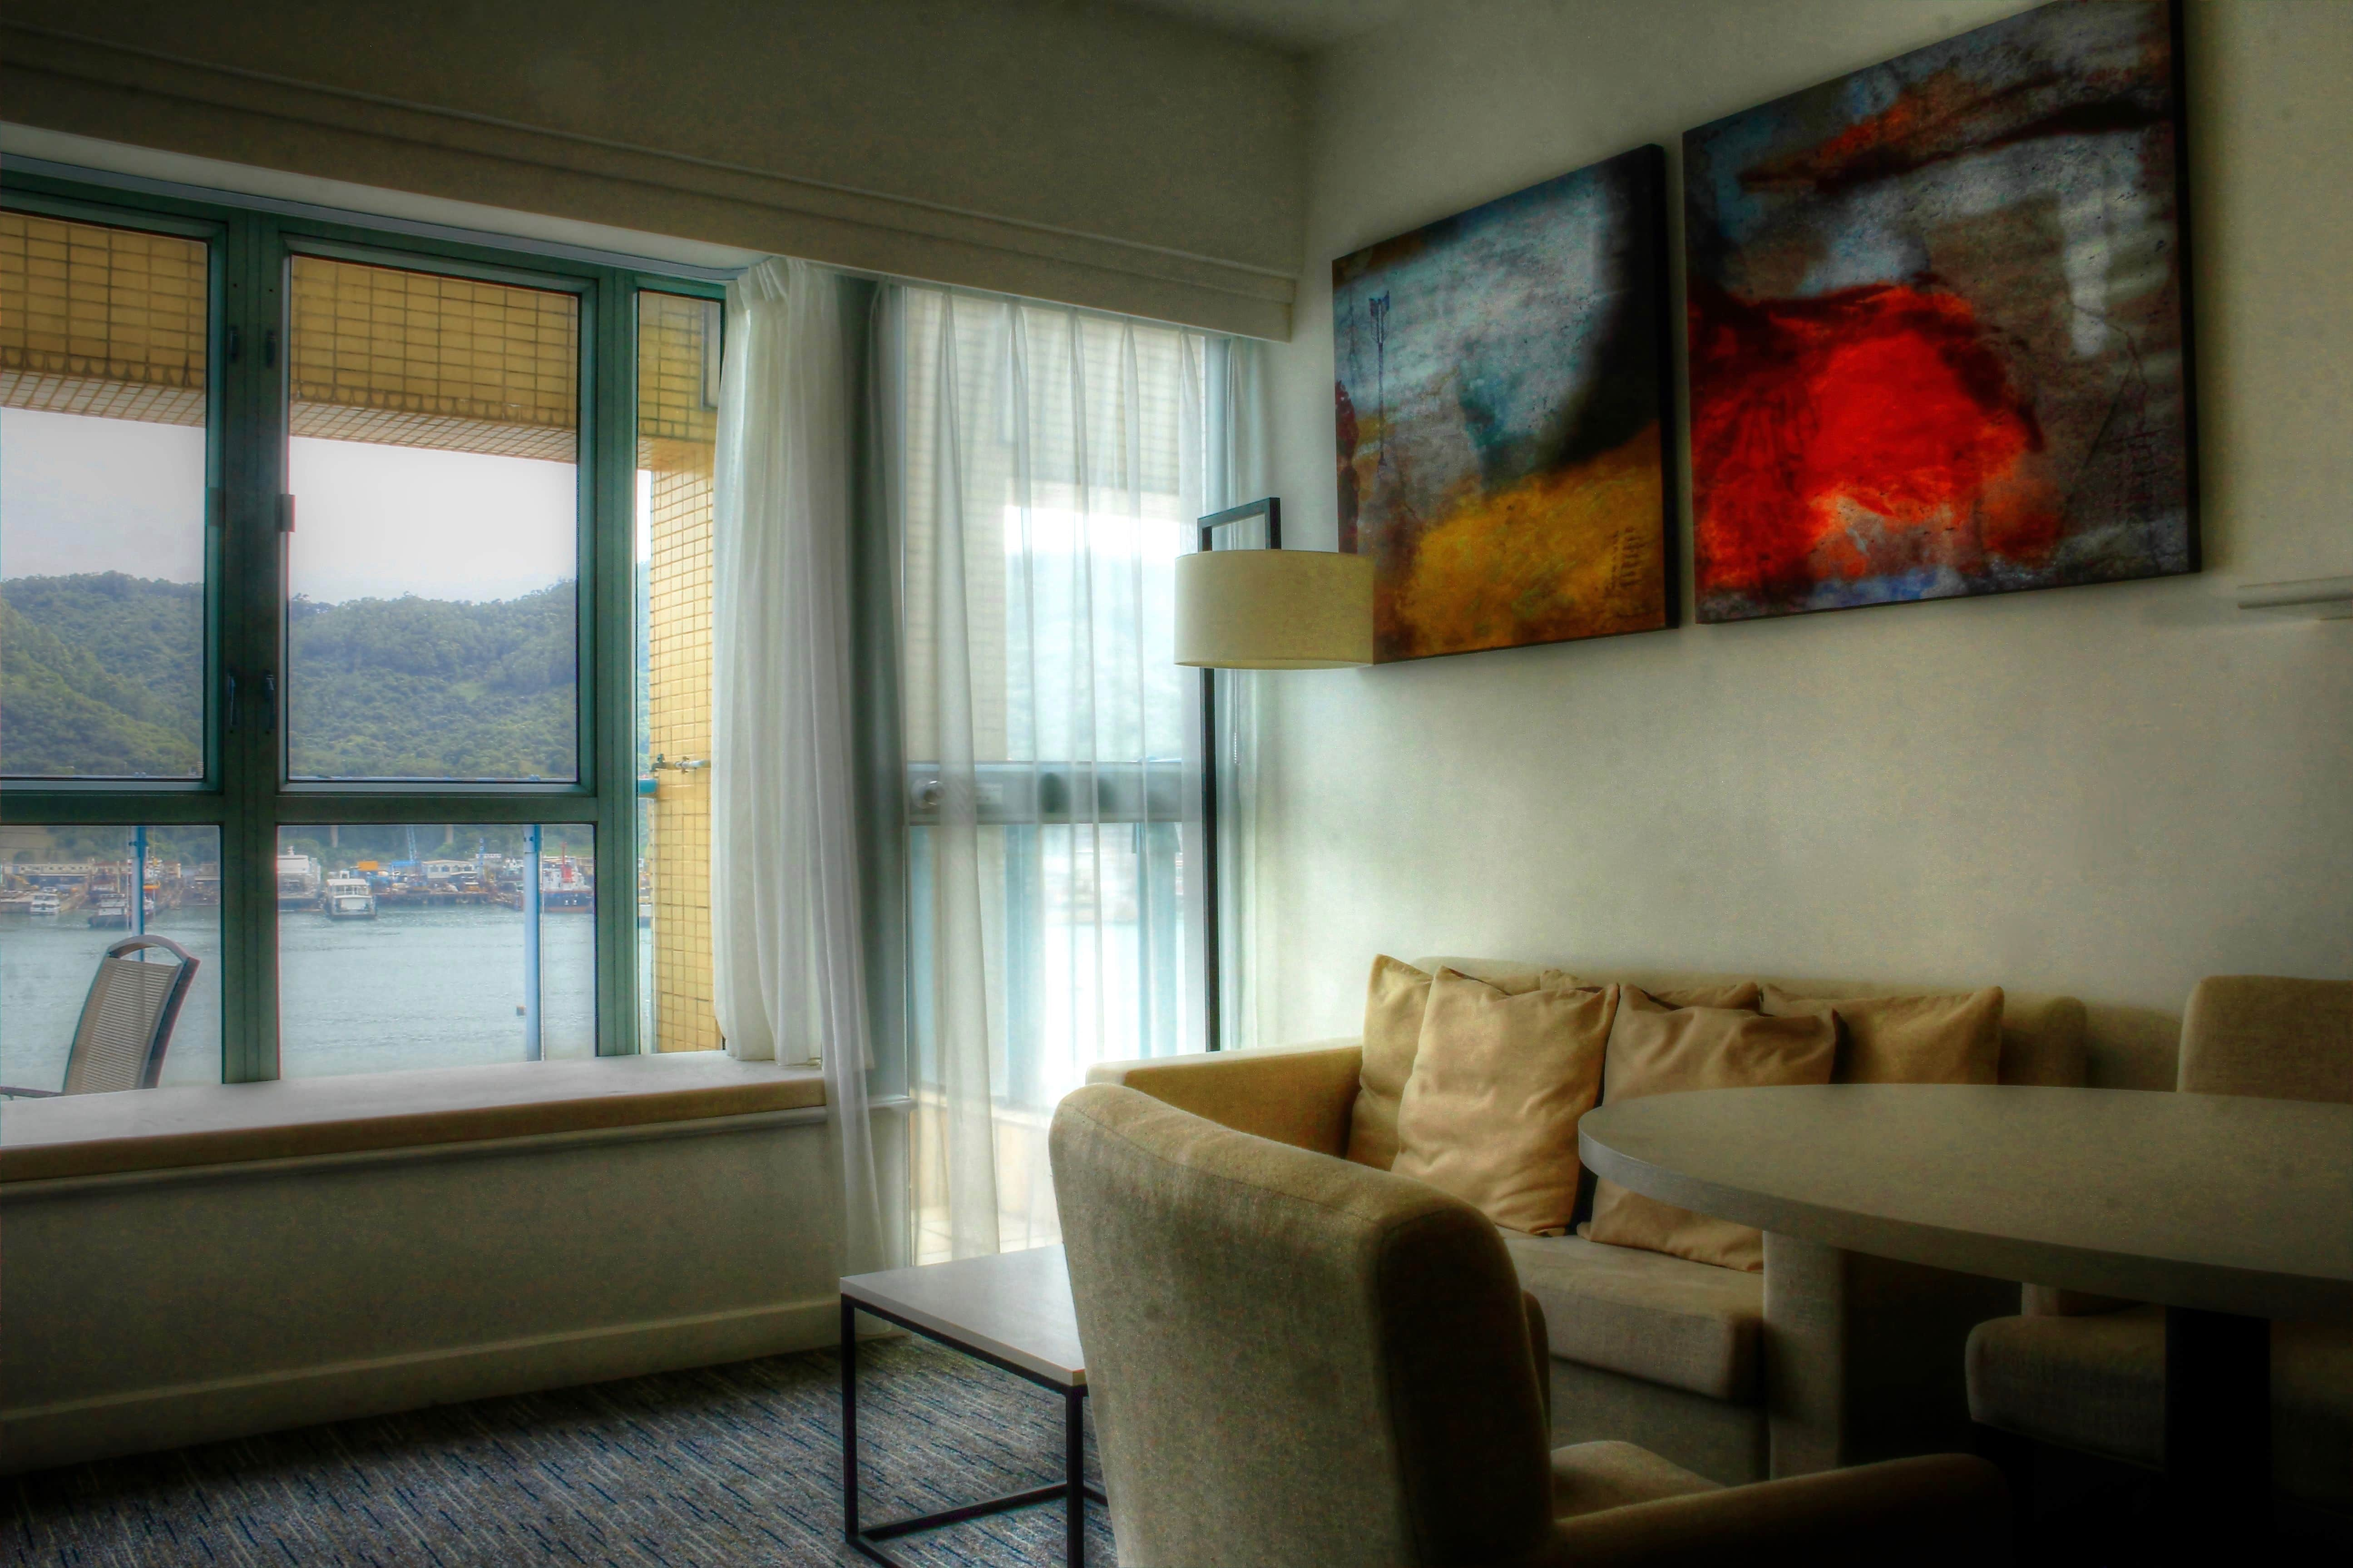 """Looking for apartment-styled accommodations in Hong Kong? Bay Bridge is not only comfortable, but a place you could call """"home."""" Read more at www.thefivefoottraveler.com"""